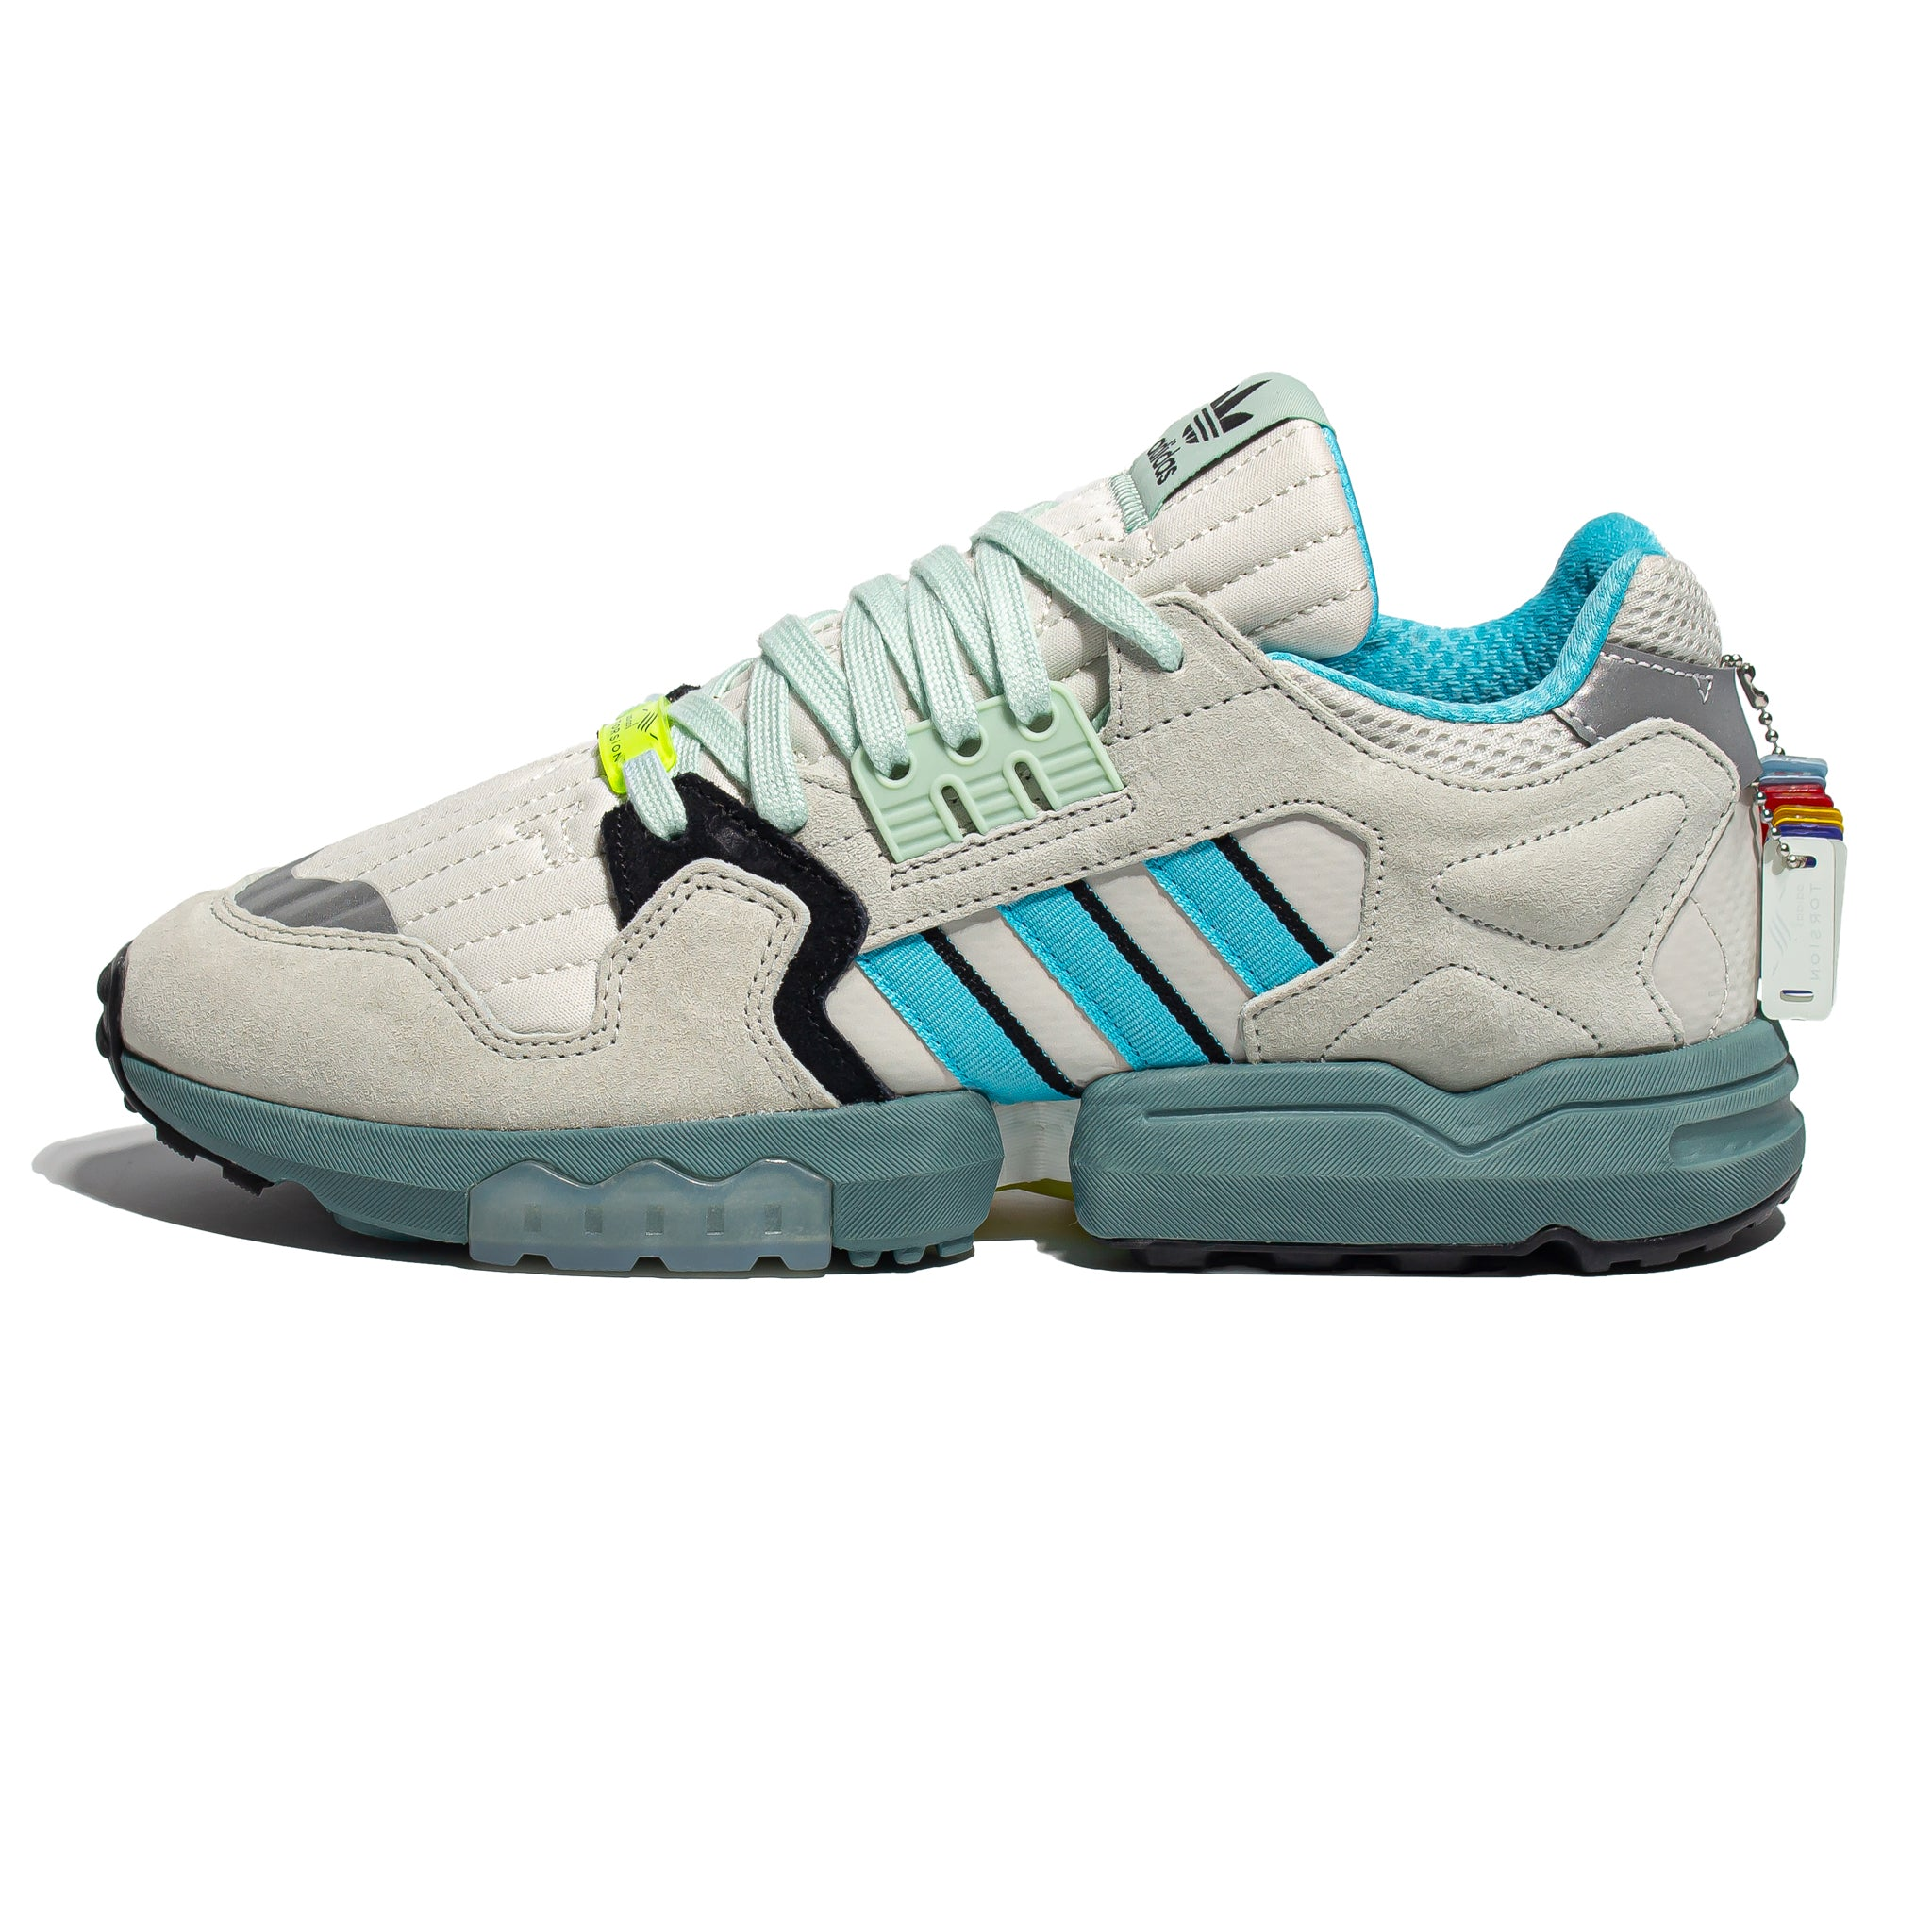 ADIDAS ZX Torsion Orbit Grey/Blue Glow